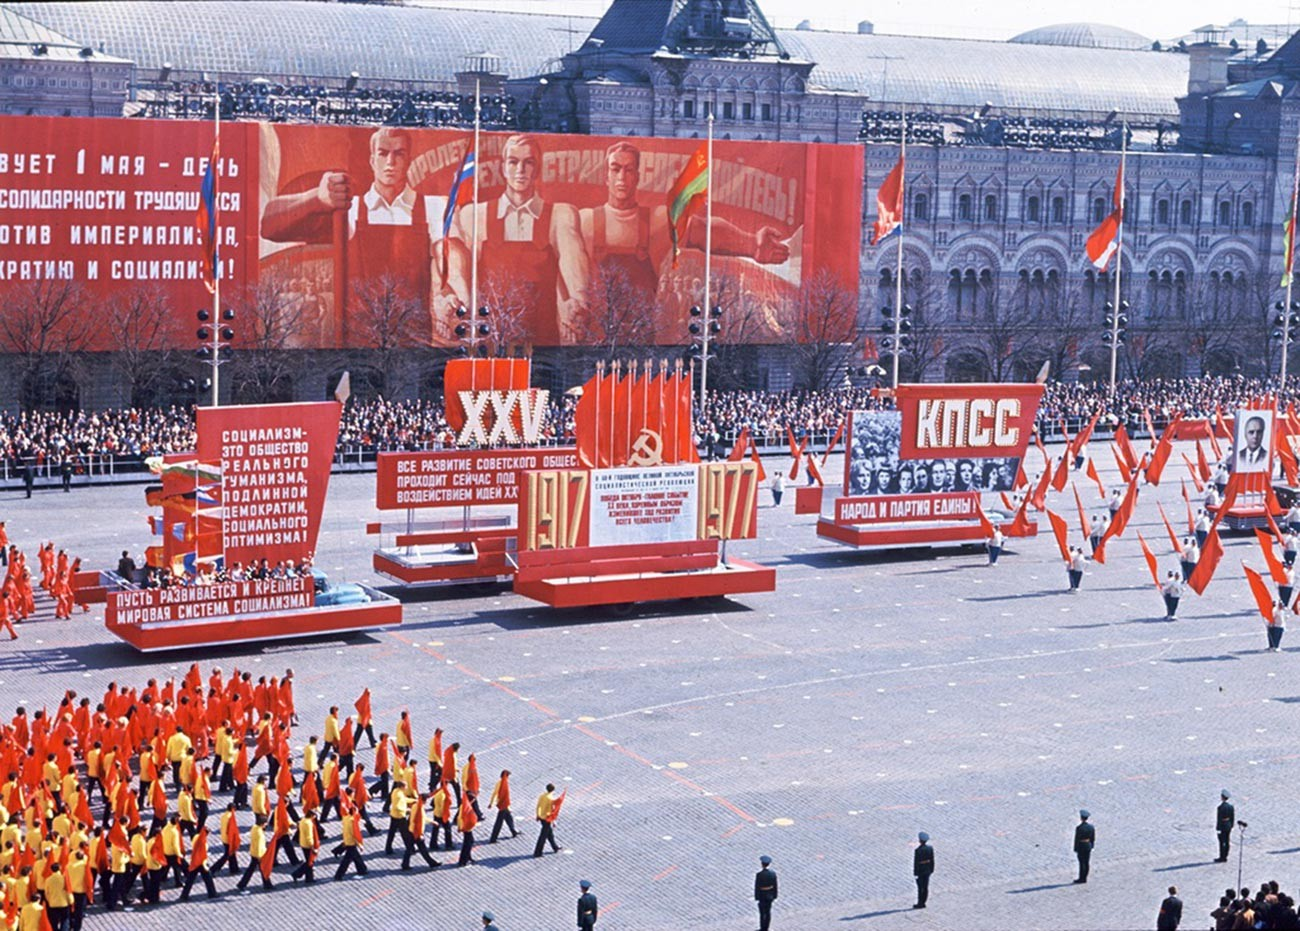 May 1 parade on Red Square